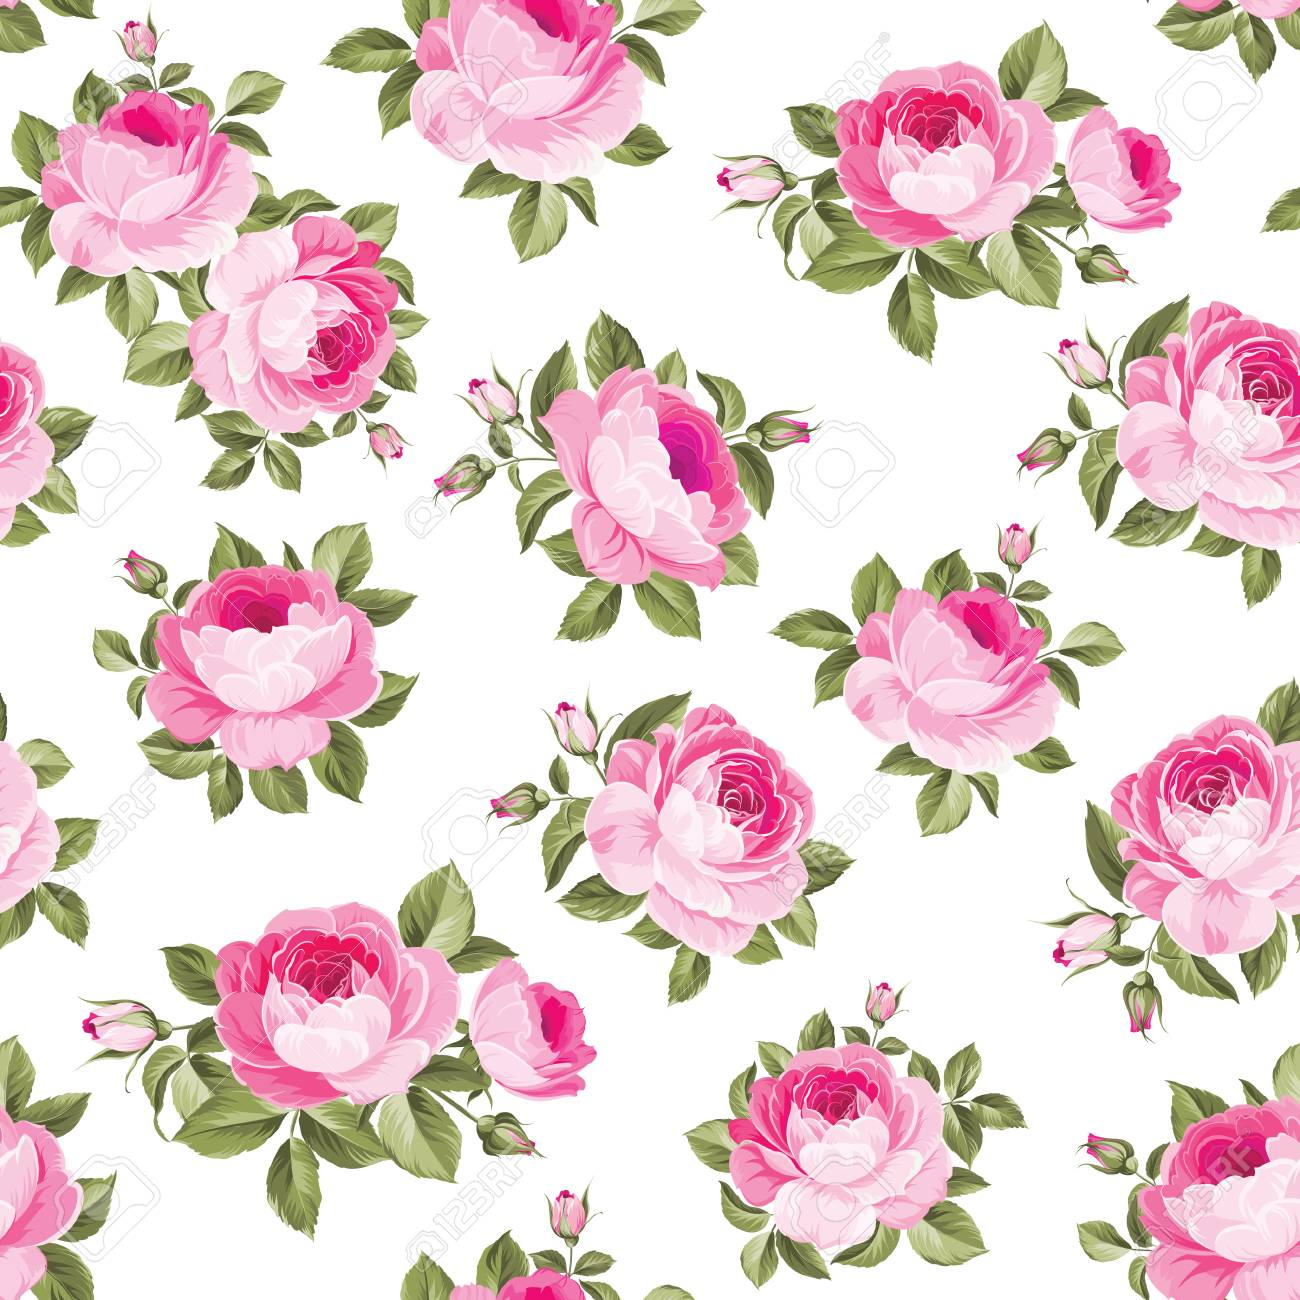 Luxurious Peony Wallpaper In Vintage Style Seamless Pattern